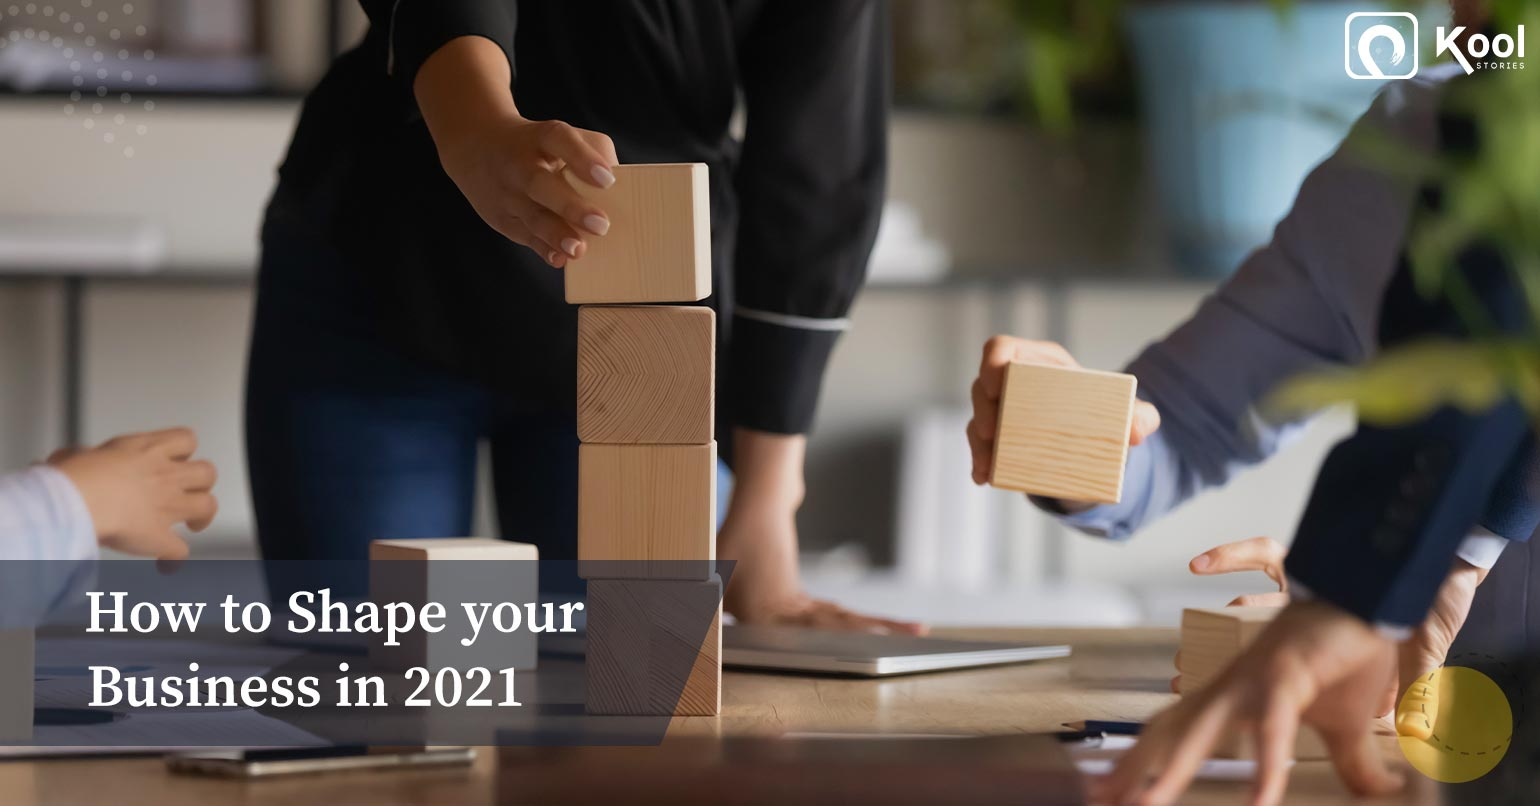 How to Shape your Business in 2021 - Learn from Leading Entrepreneurial Icons